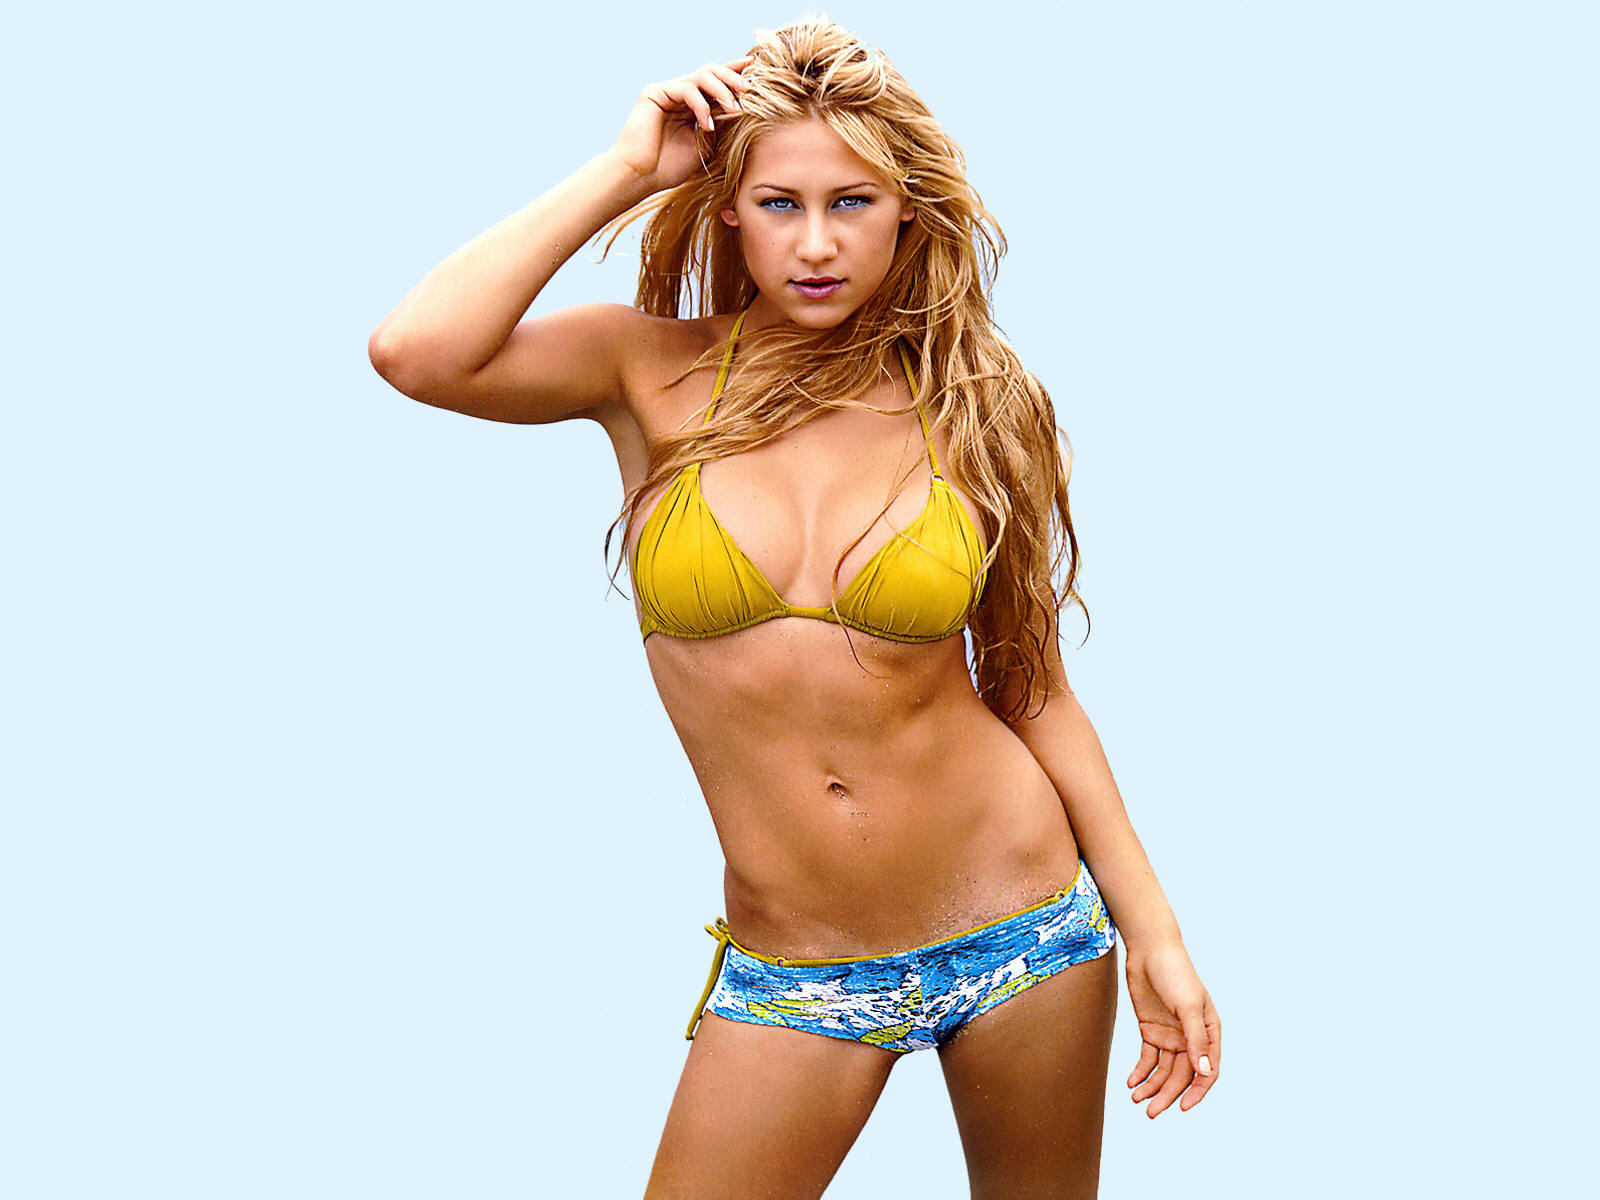 anna kournikova hot pictures photo gallery amp wallpapers